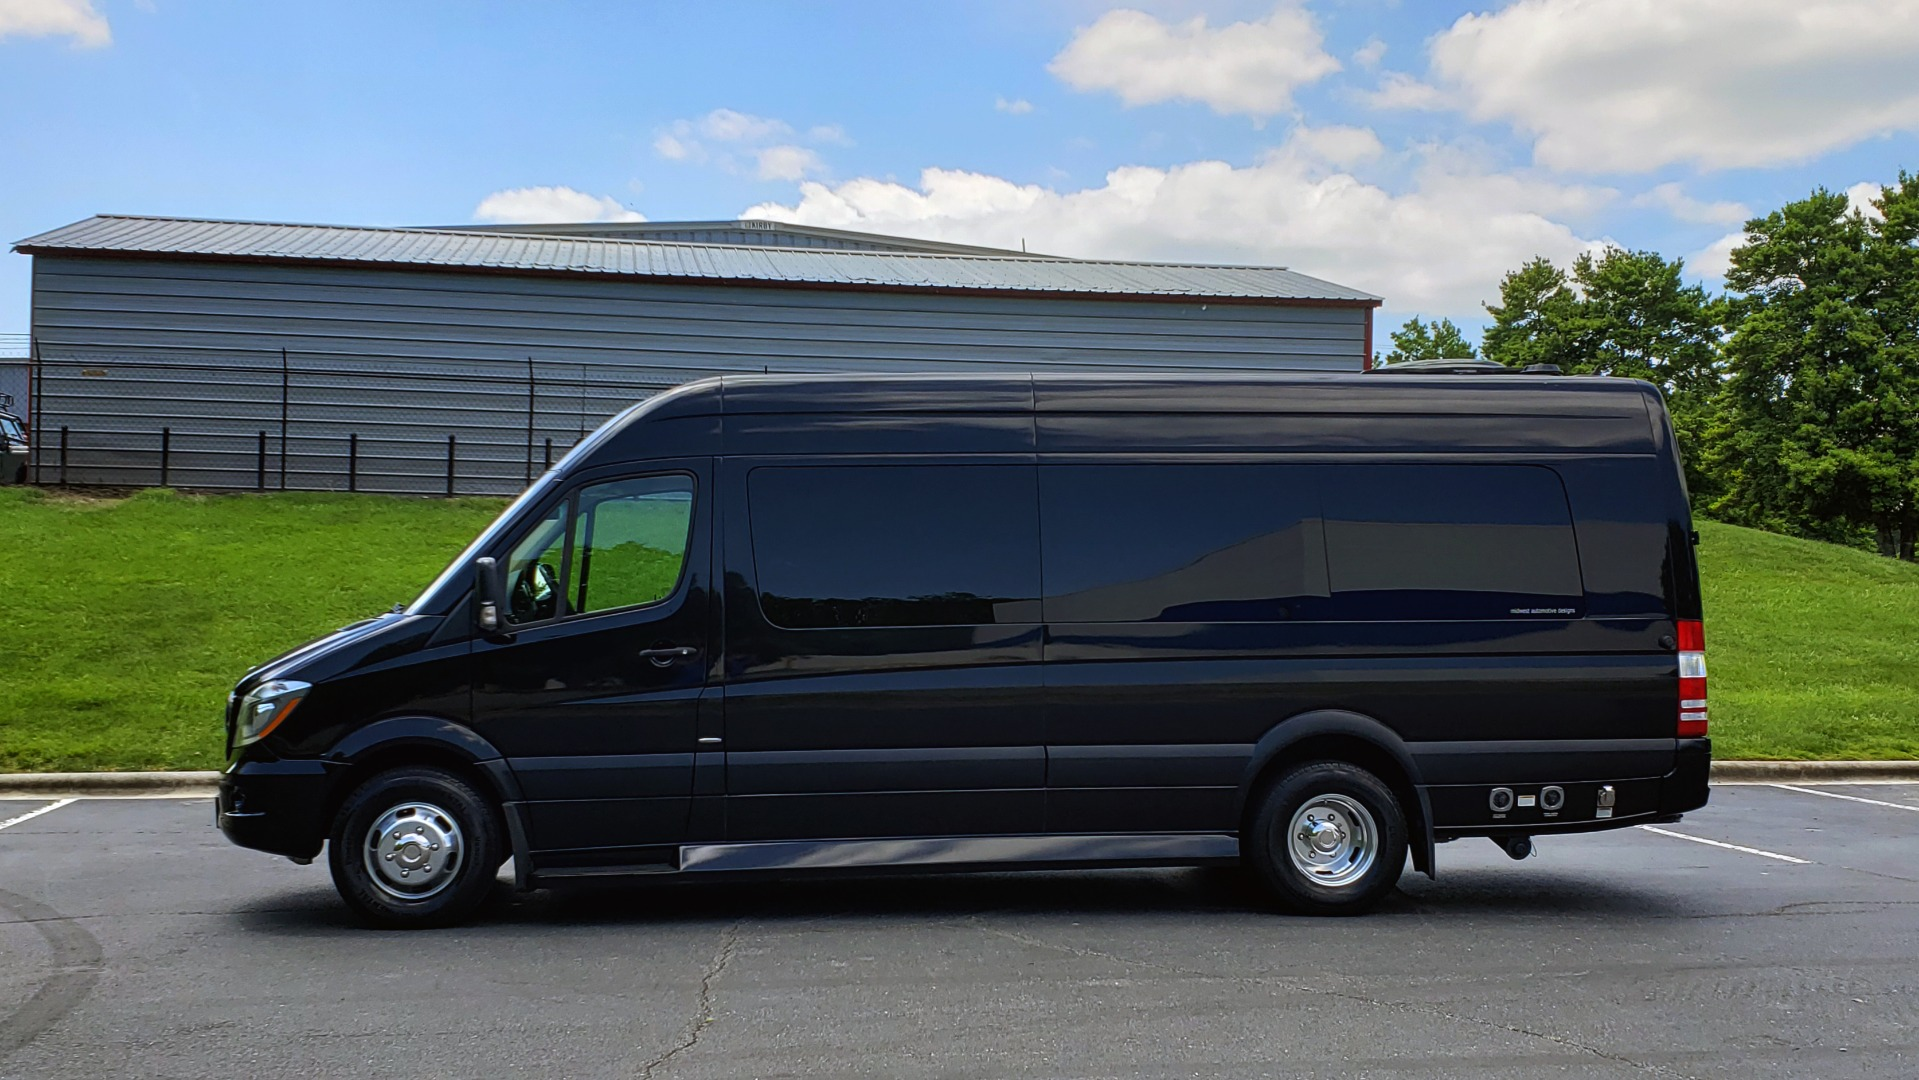 Used 2015 Mercedes-Benz SPRINTER CARGO VAN EXT 3500 170-IN WB / MIDWEST LUXURY CONVERSION for sale $84,995 at Formula Imports in Charlotte NC 28227 2